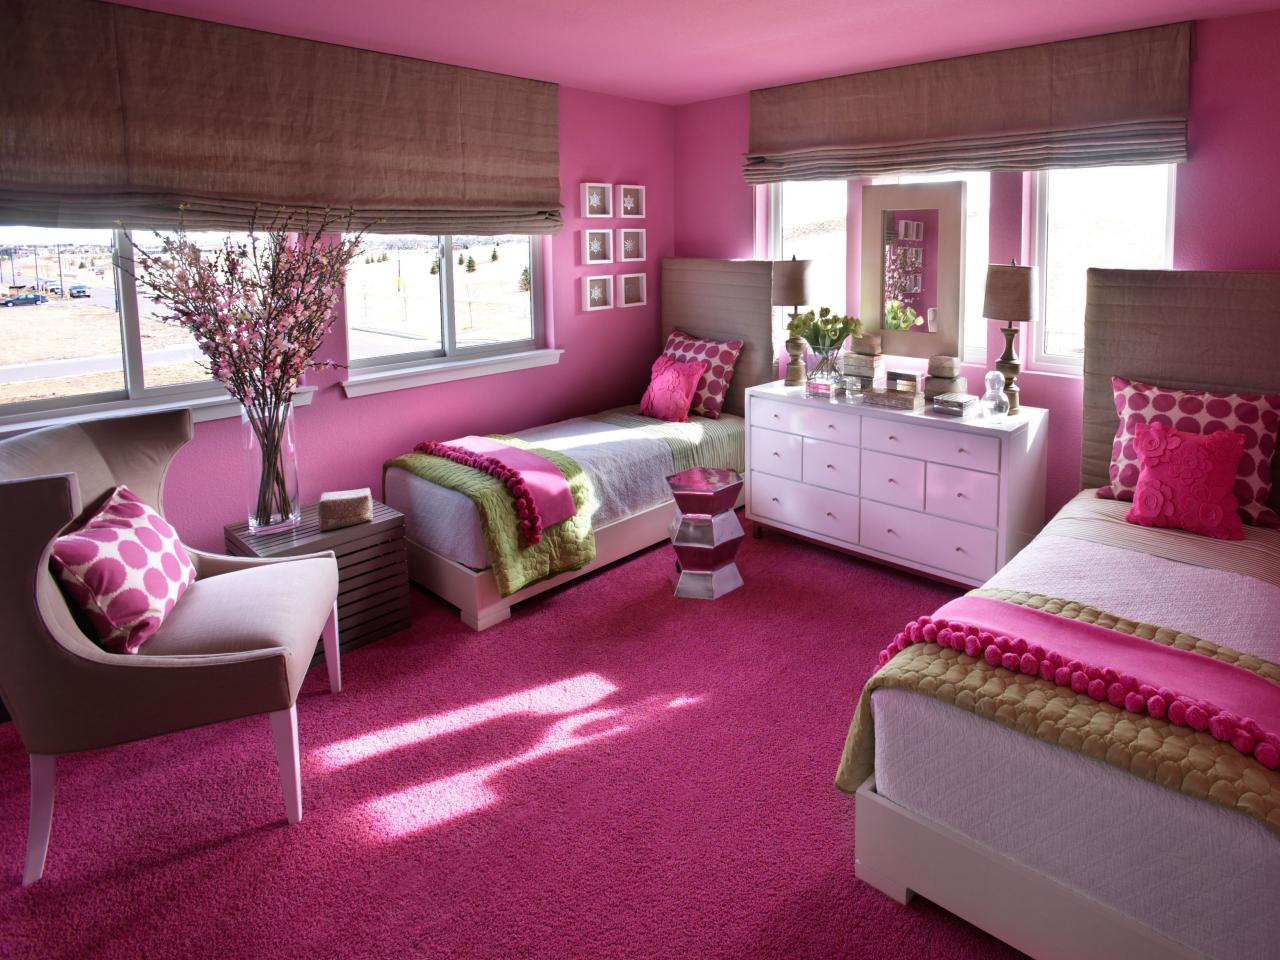 Girl's Room From HGTV Green Home 2011